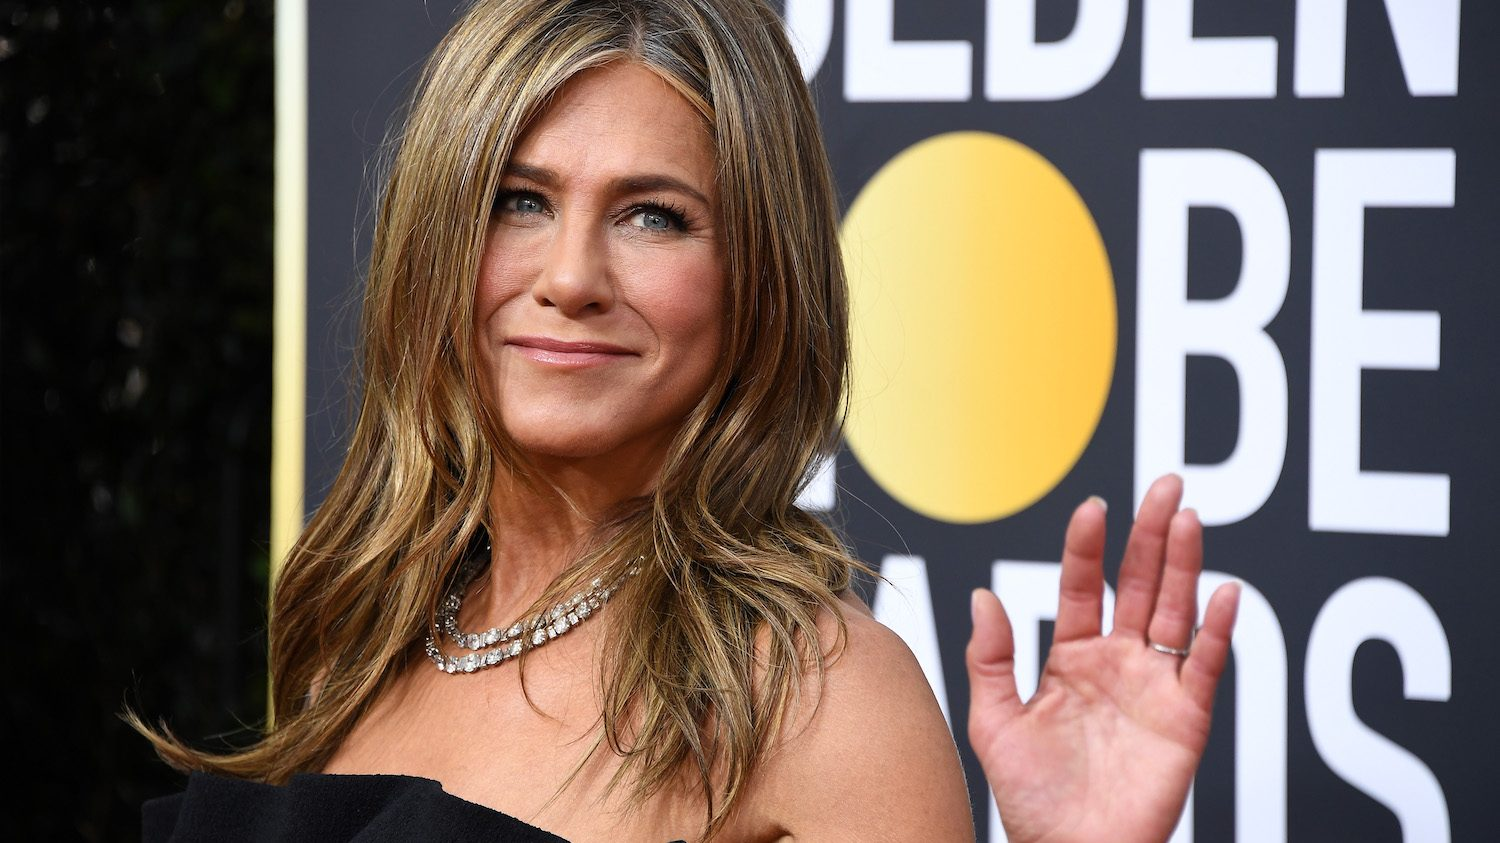 Jennifer Aniston's Underwear Brand of Choice Is Hanky Panky